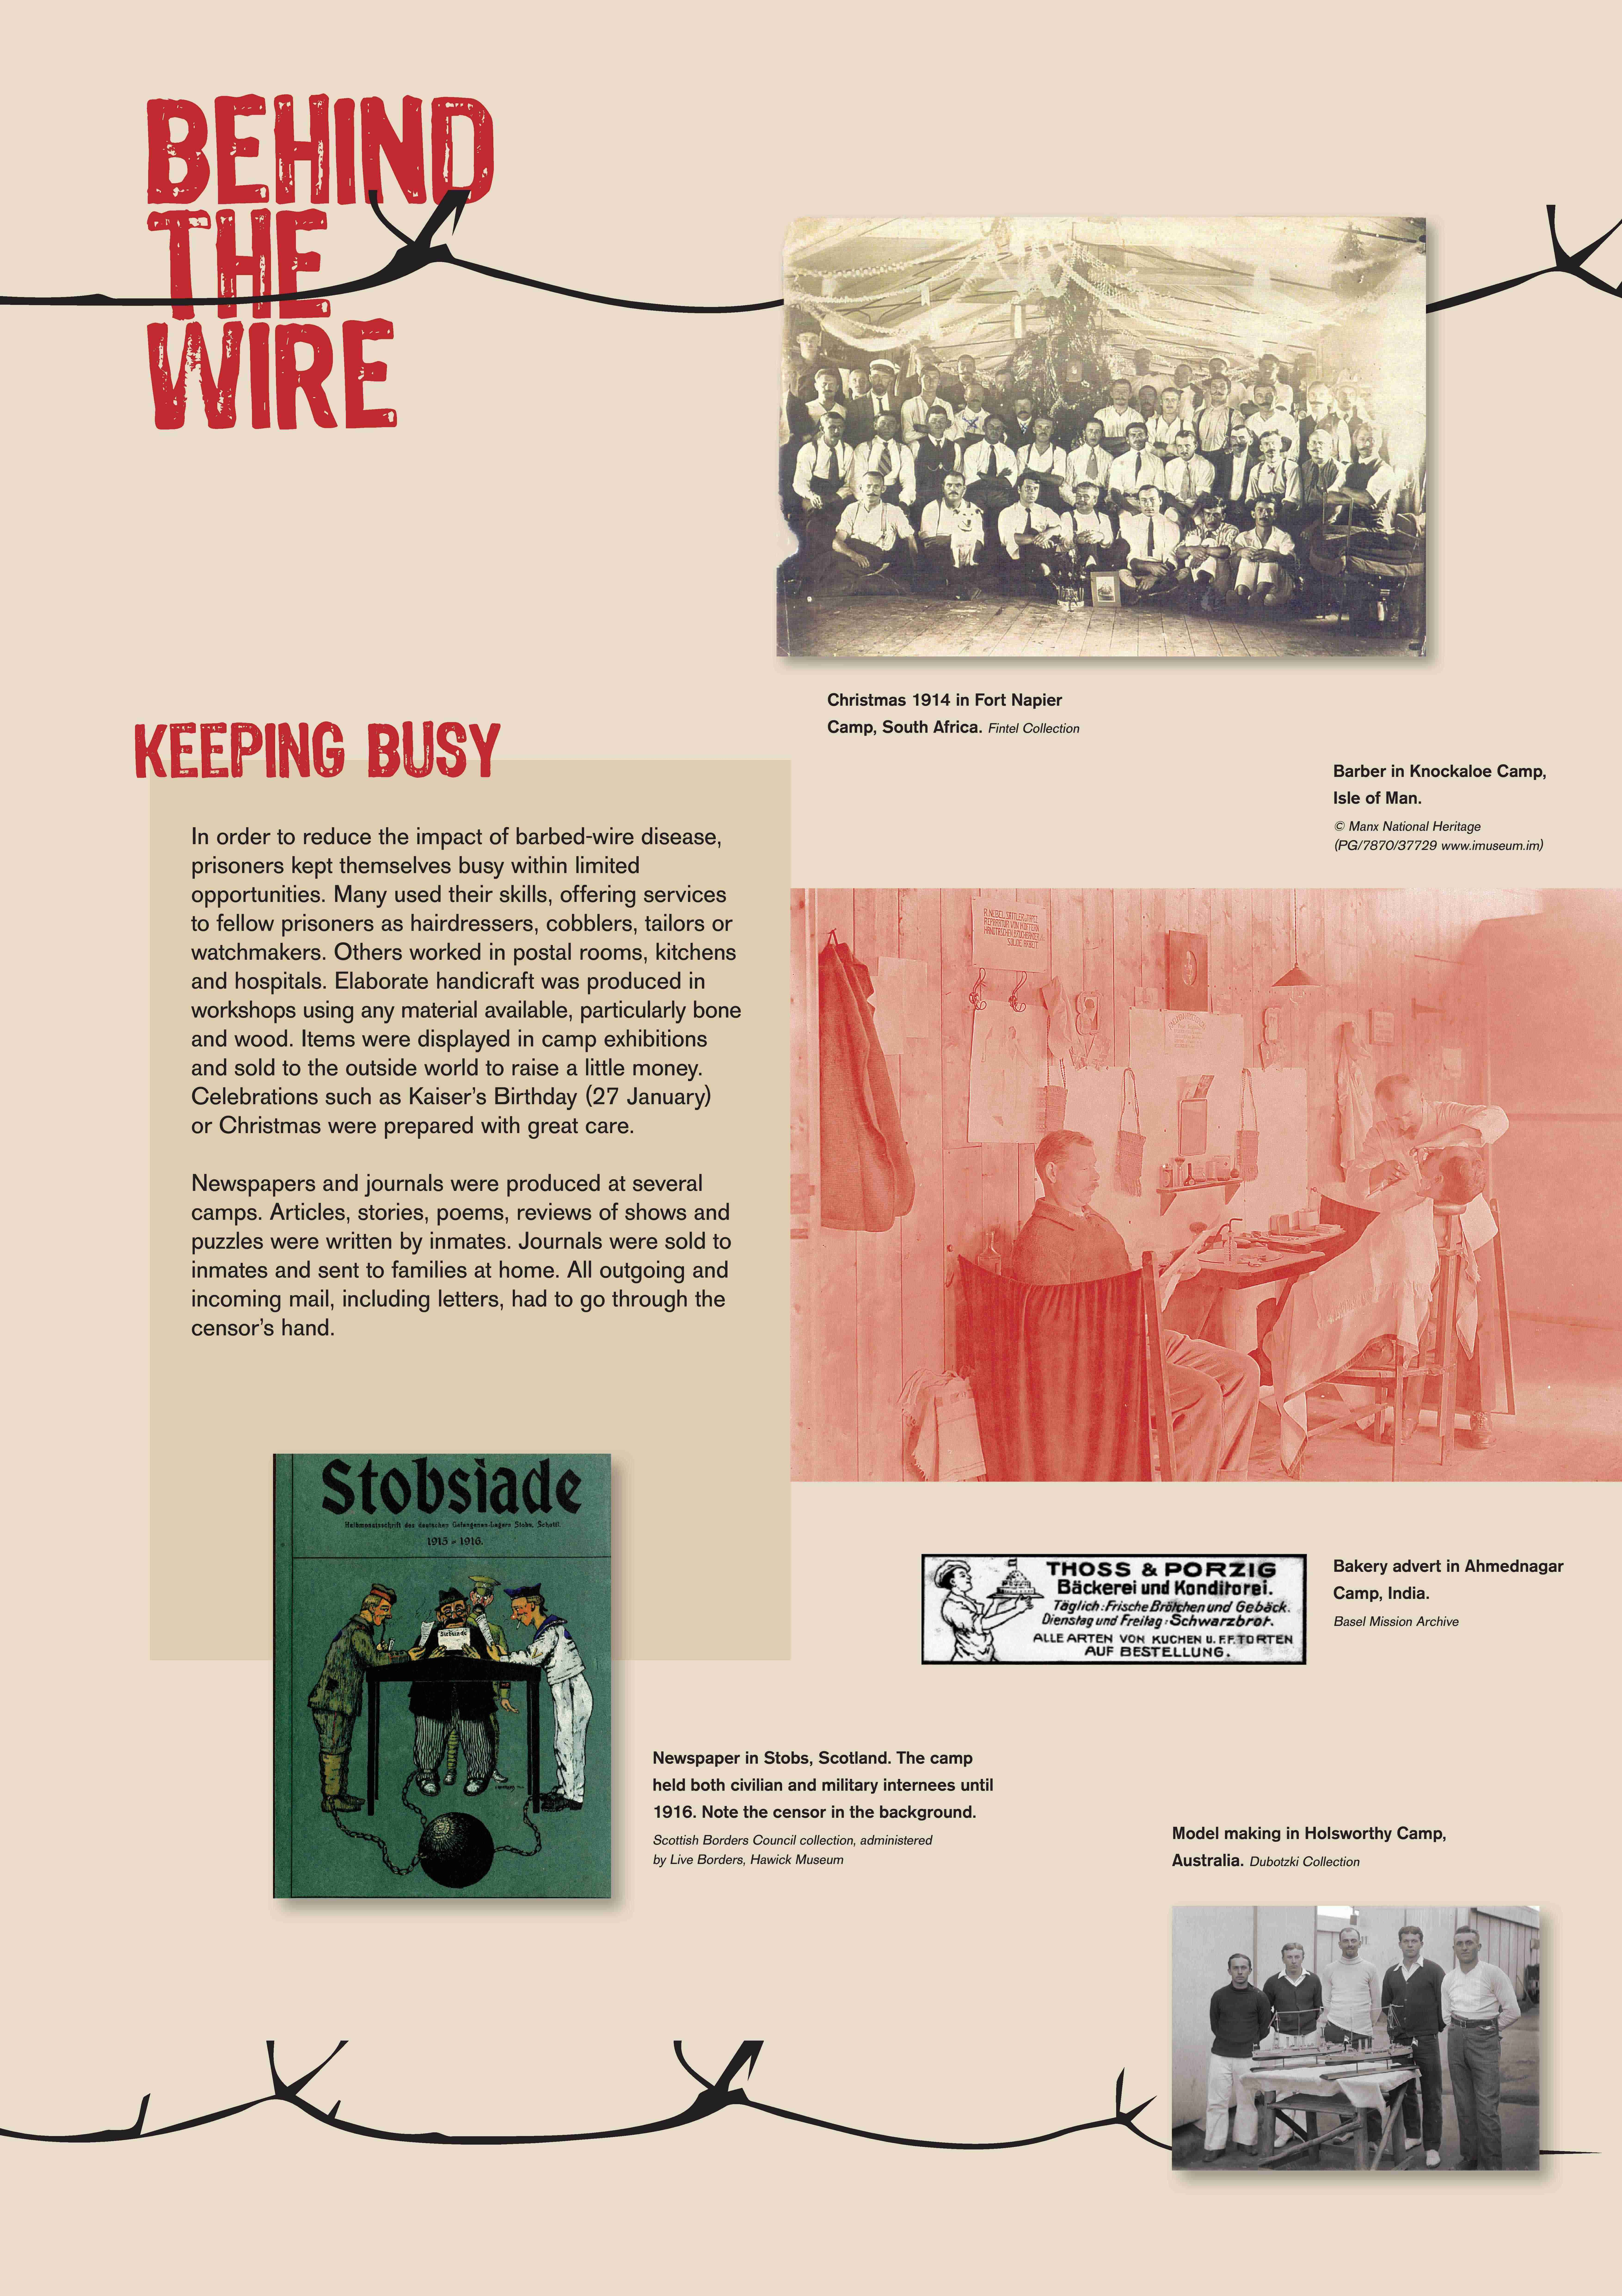 10-Behind the Wire-A1-Exhibition-Keeping Busy_DIGITAL VERSION-page-001-min-compressed (1)